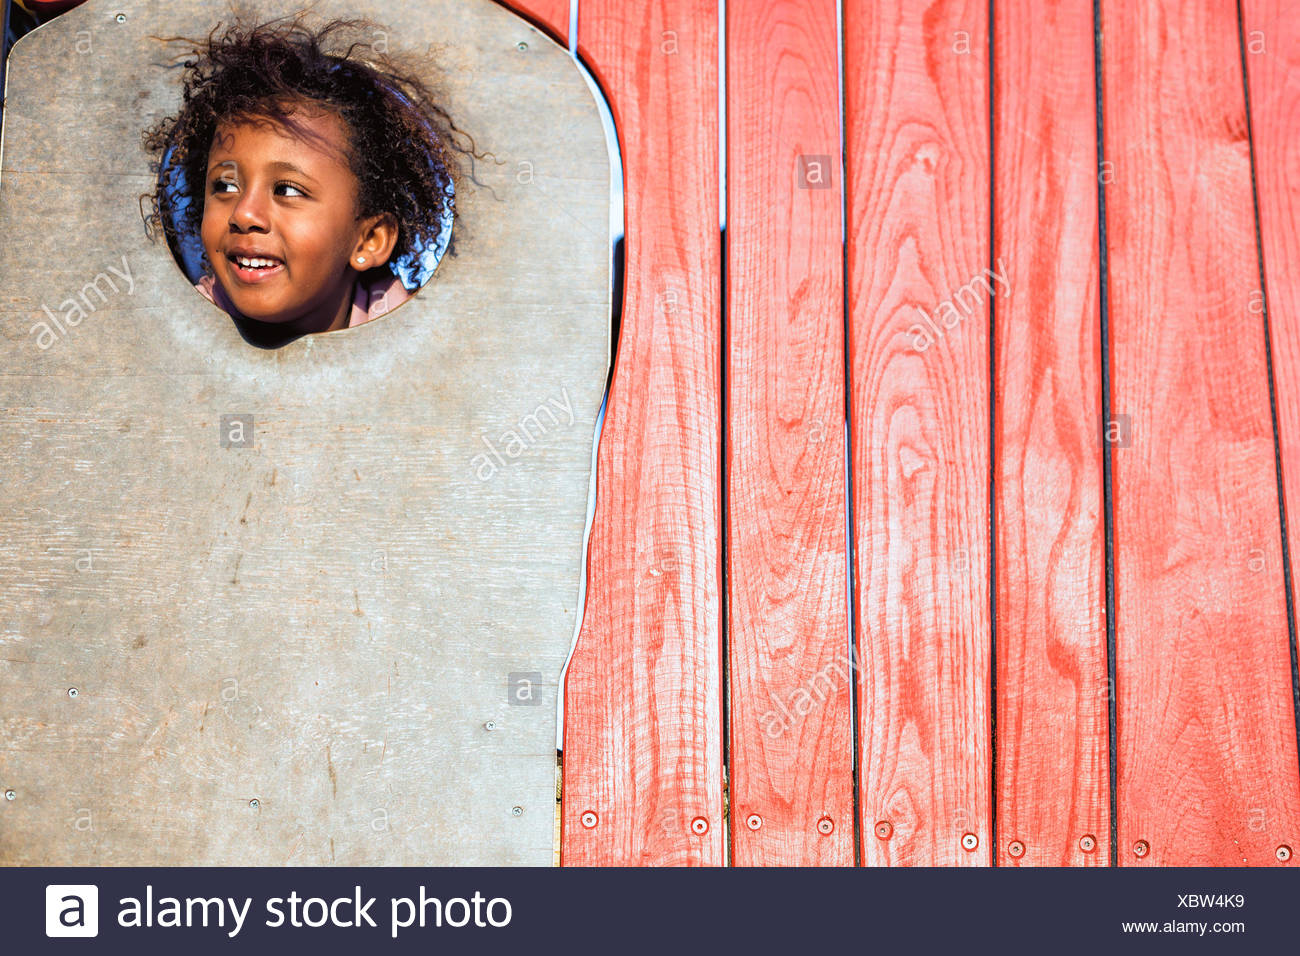 Smiling girl poking her head through a hole in the wall, Perth, Australia - Stock Image